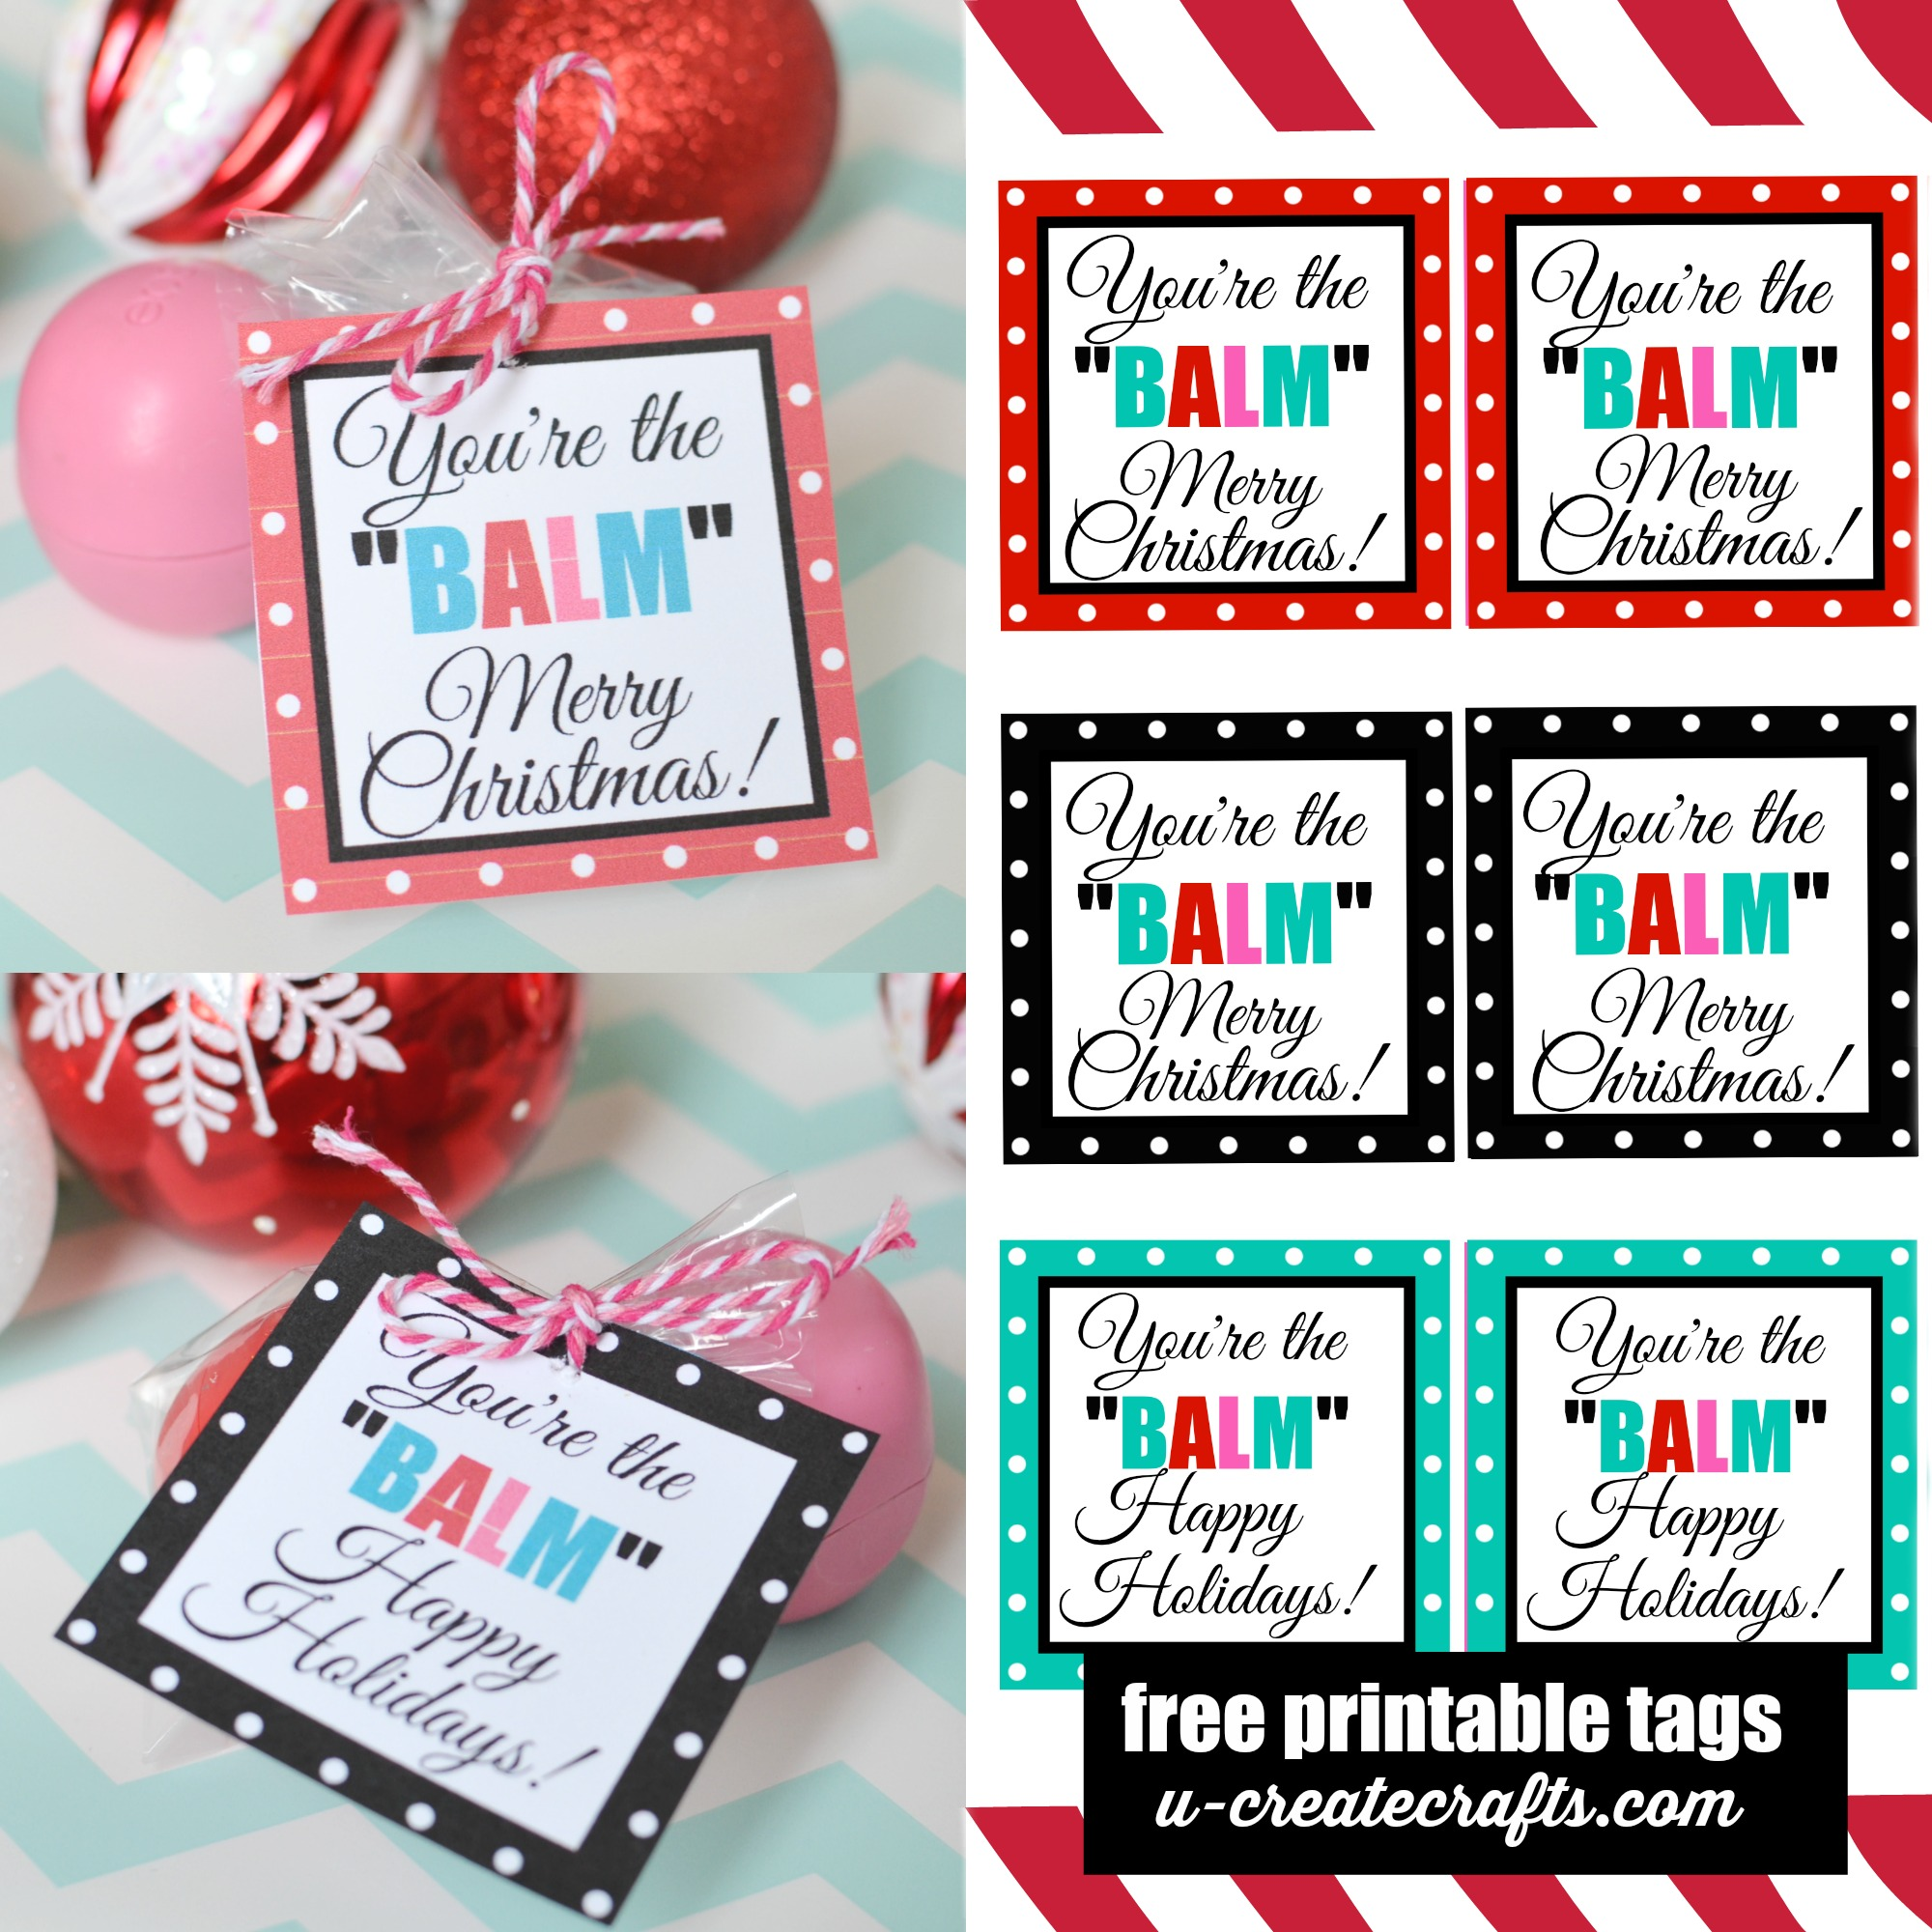 Lively image intended for you're the balm free printable